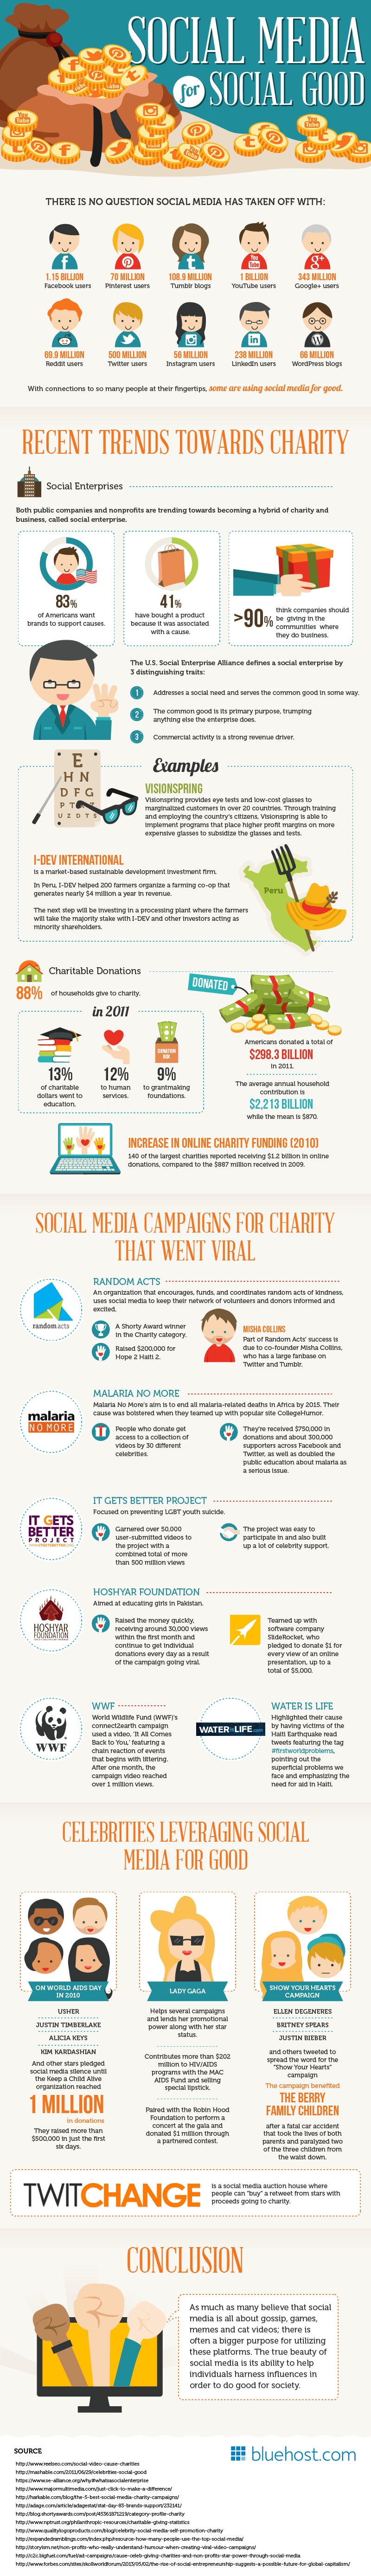 Social-Media-For-Social-Good #Infographic